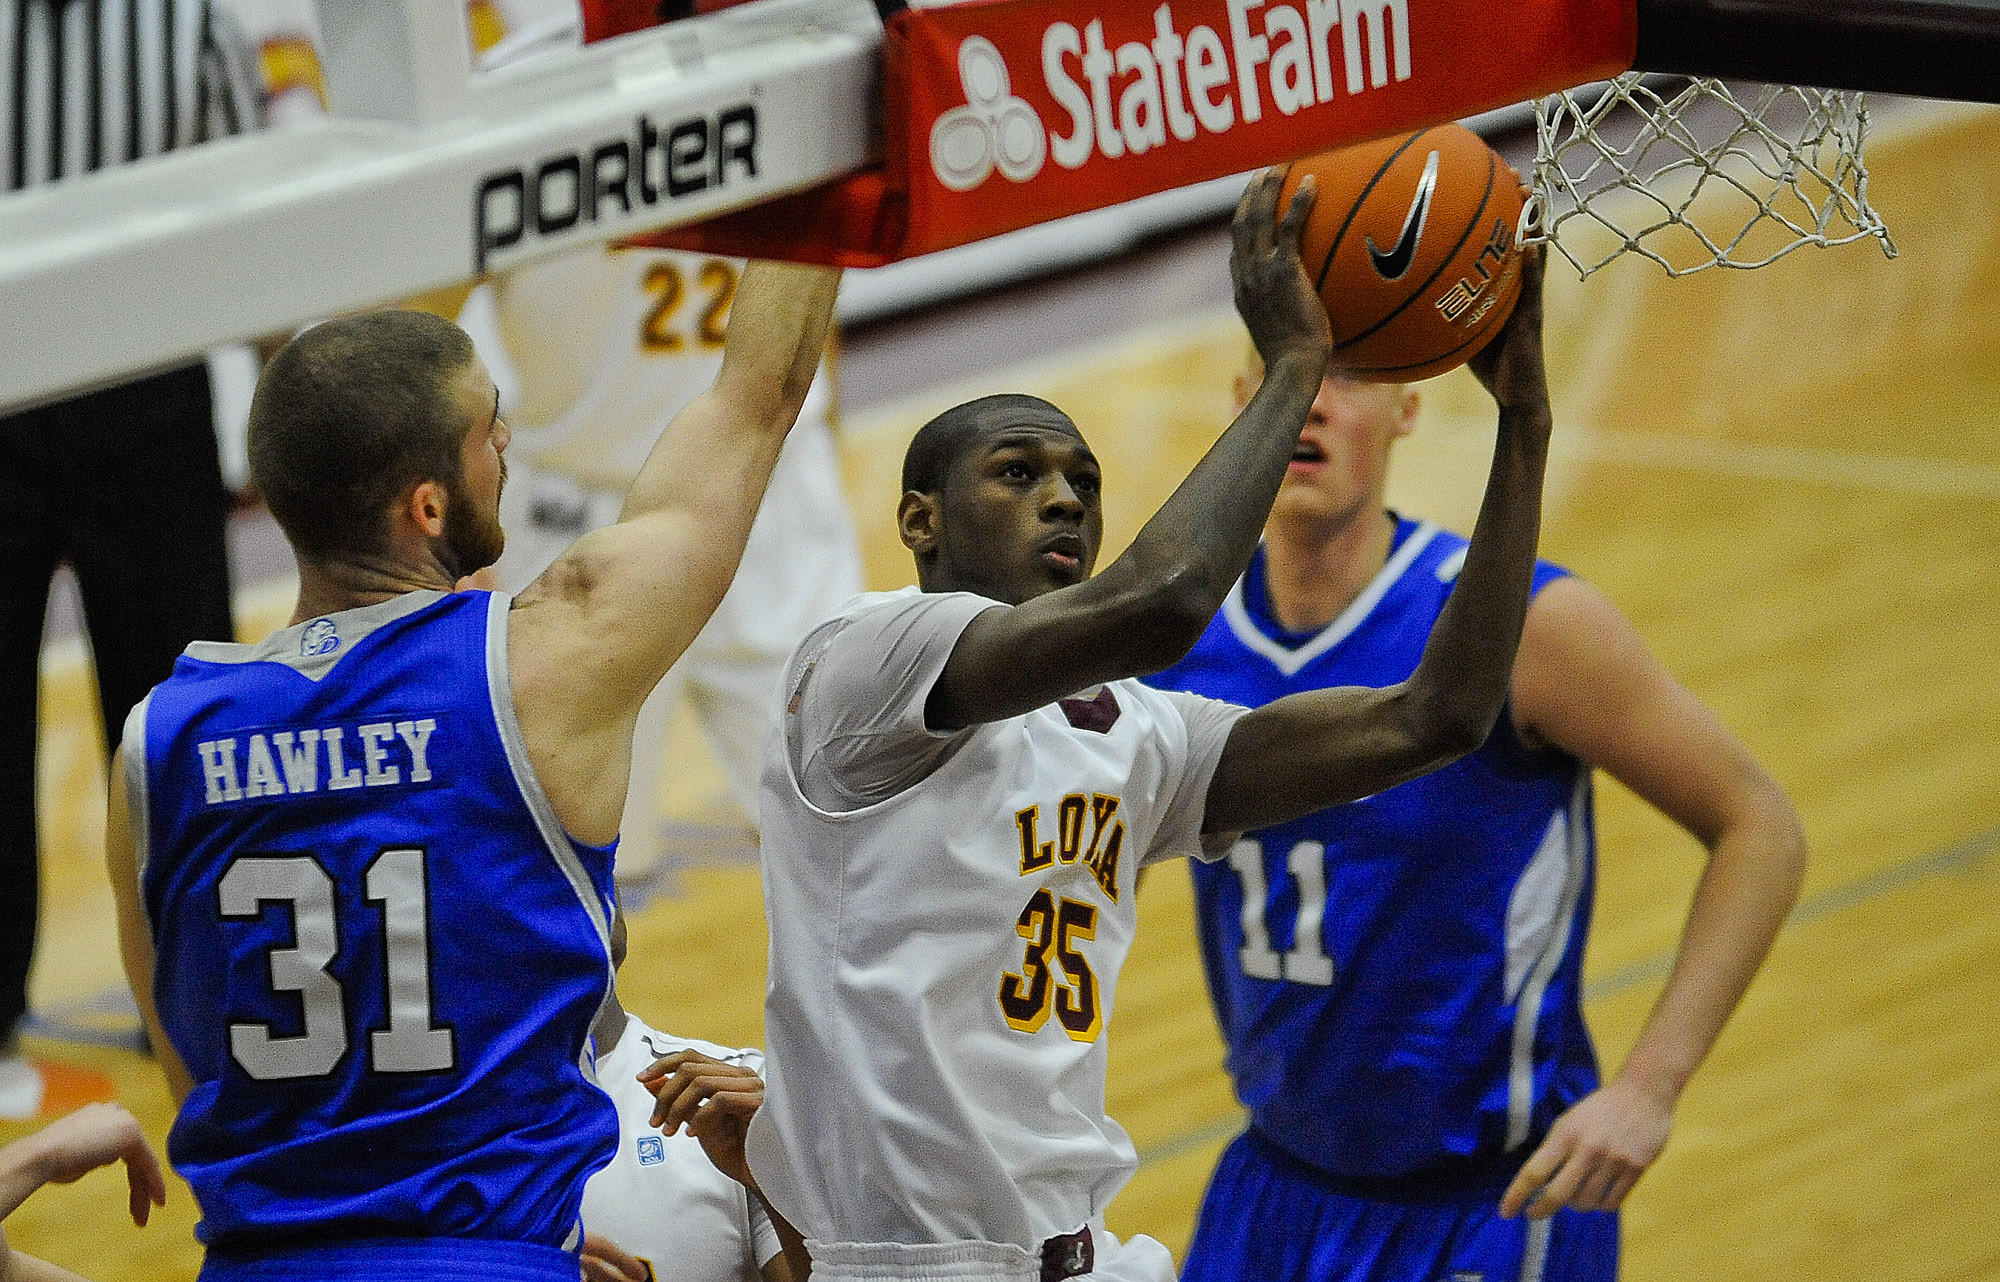 Loyola's Milton Doyle shoots against Drake's Aaron Hawley and Jacob Enevold Jensen during the first half.